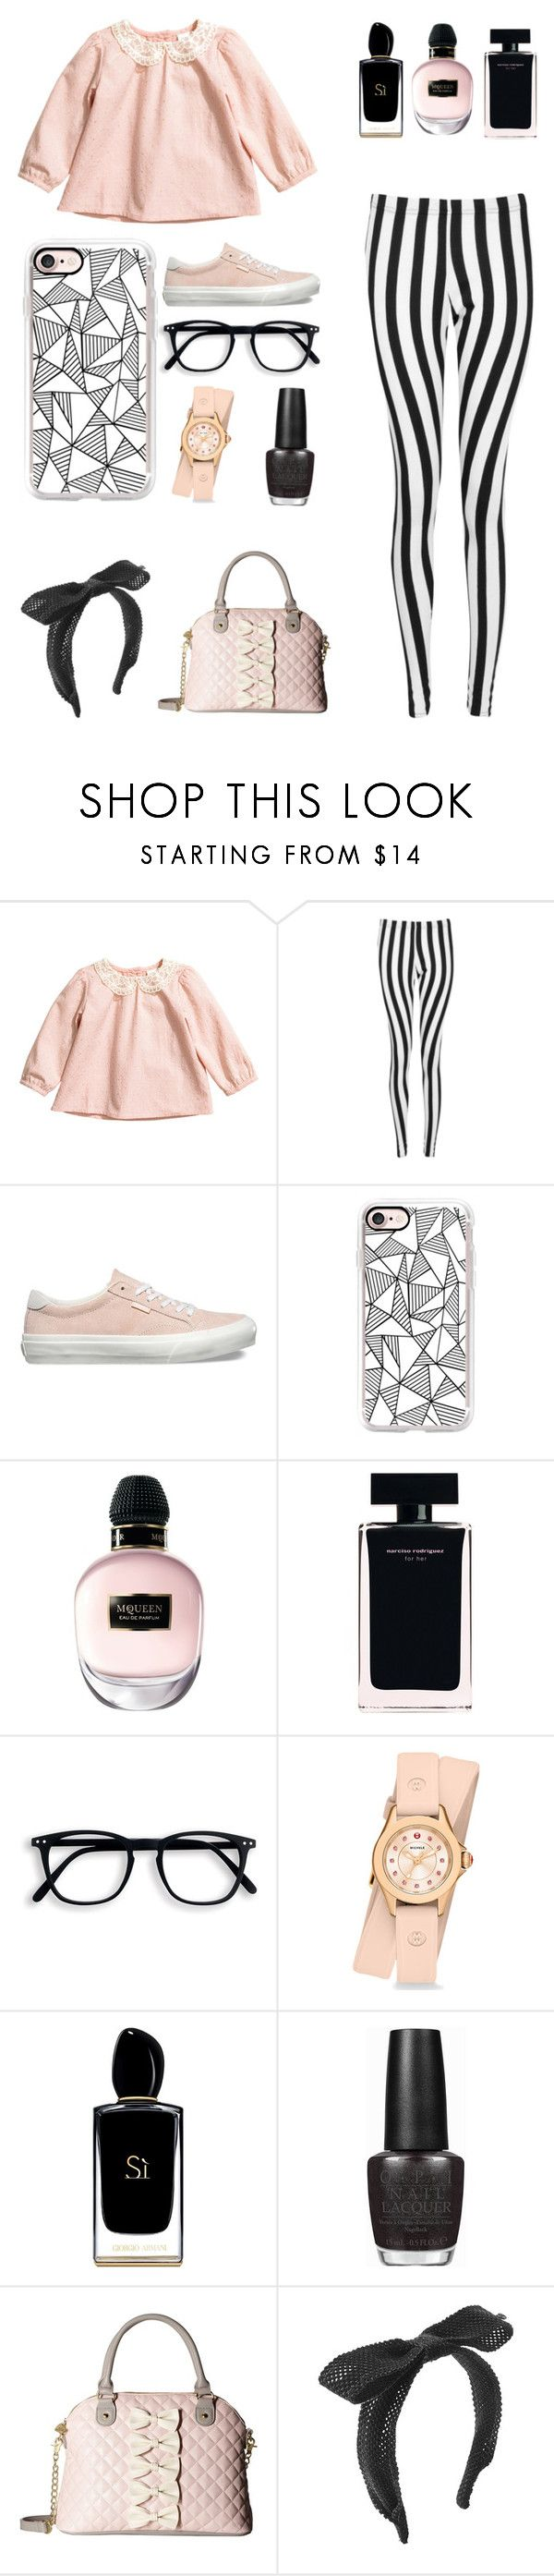 """Striped Leggings"" by pattibear ❤ liked on Polyvore featuring H&M, Boohoo, Vans, Casetify, Alexander McQueen, Narciso Rodriguez, Michele, Giorgio Armani, OPI and Betsey Johnson"